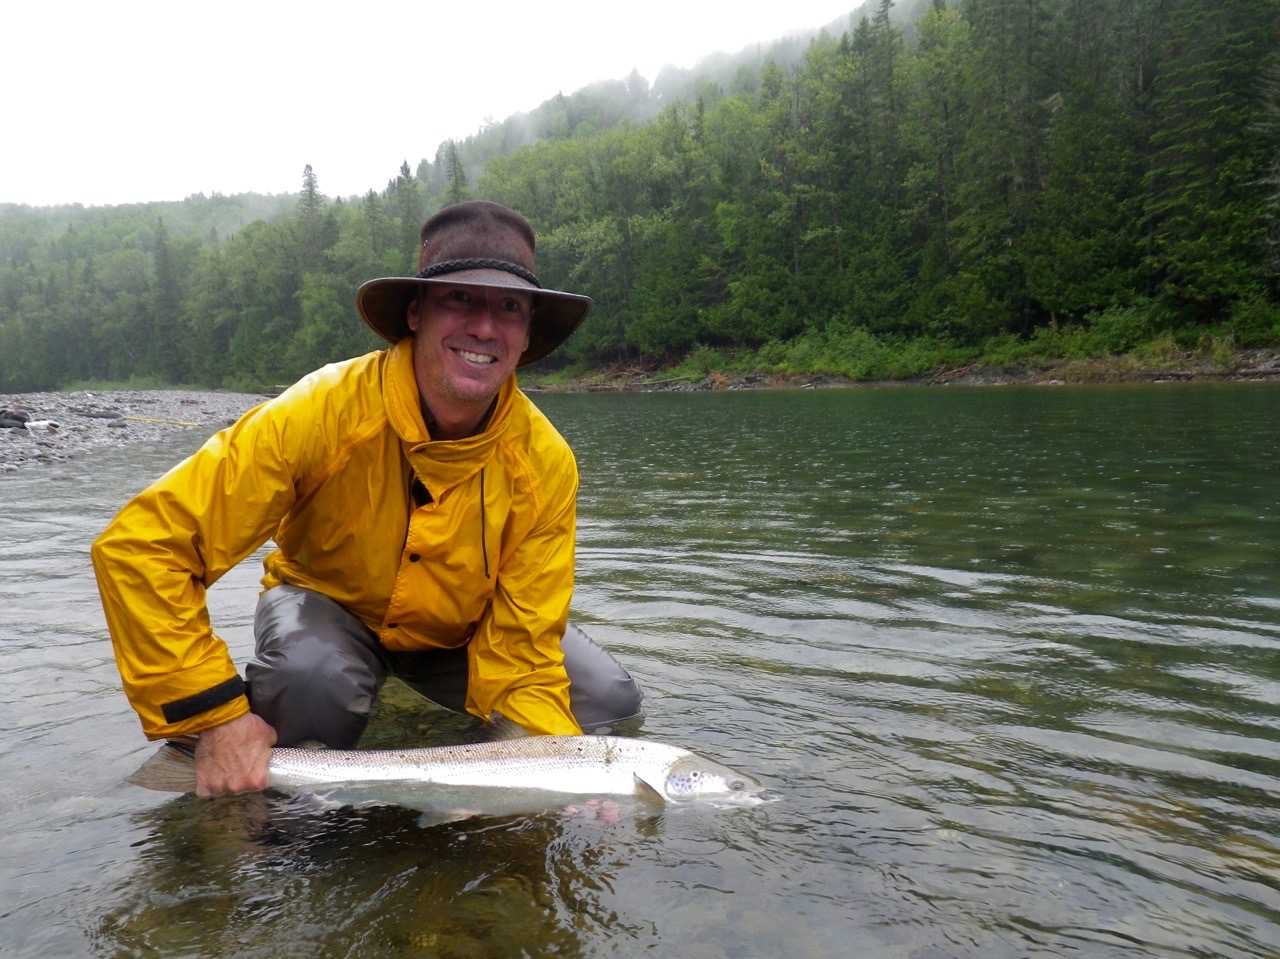 Louis Armand Bombardier releases a nice salmon back to swim again, Congratulations Louis Armand! Well done.